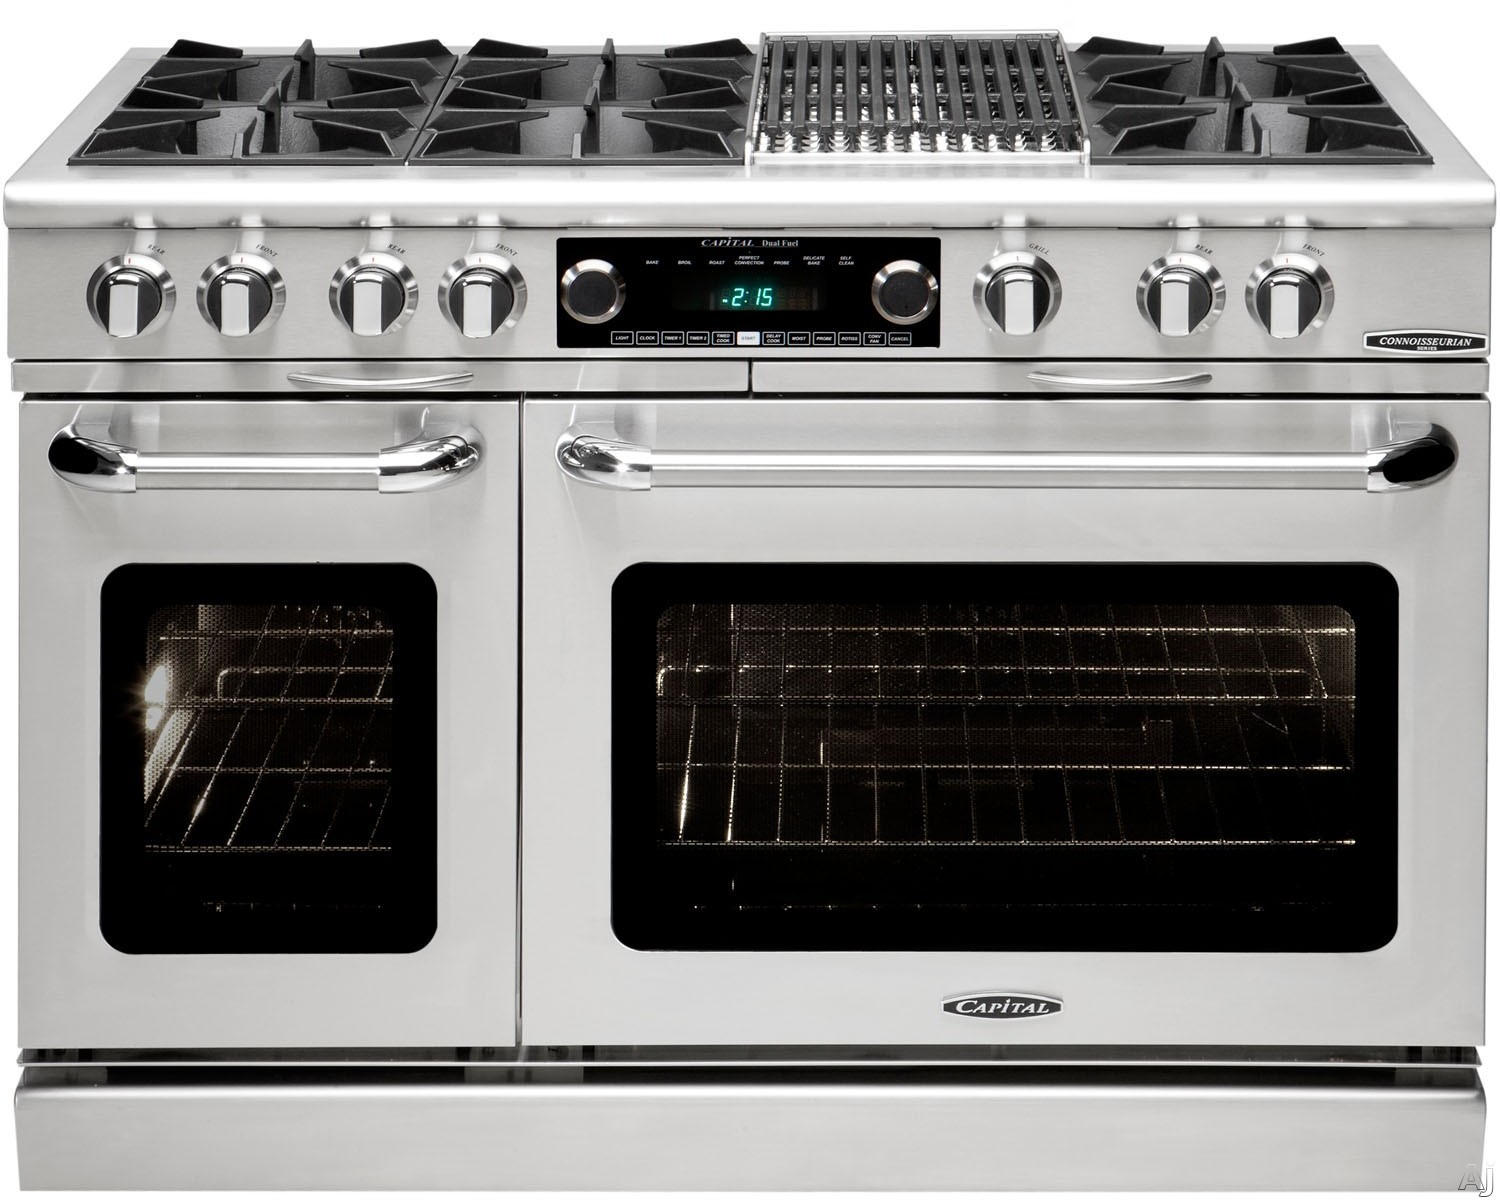 "Capital Connoisseurian Series COB484B2 48 Inch Freestanding Dual Fuel Range with 6 Open Burners, Meat Probes, 12"""" BBQ Grill, Dual Kitchen Timers, Moto-Rotisâ""¢ Rotisserie, Moist Bake Option, 5.4 cu. ft. Primary Oven and 2.4 cu. ft. Secondary Oven"" COB48"